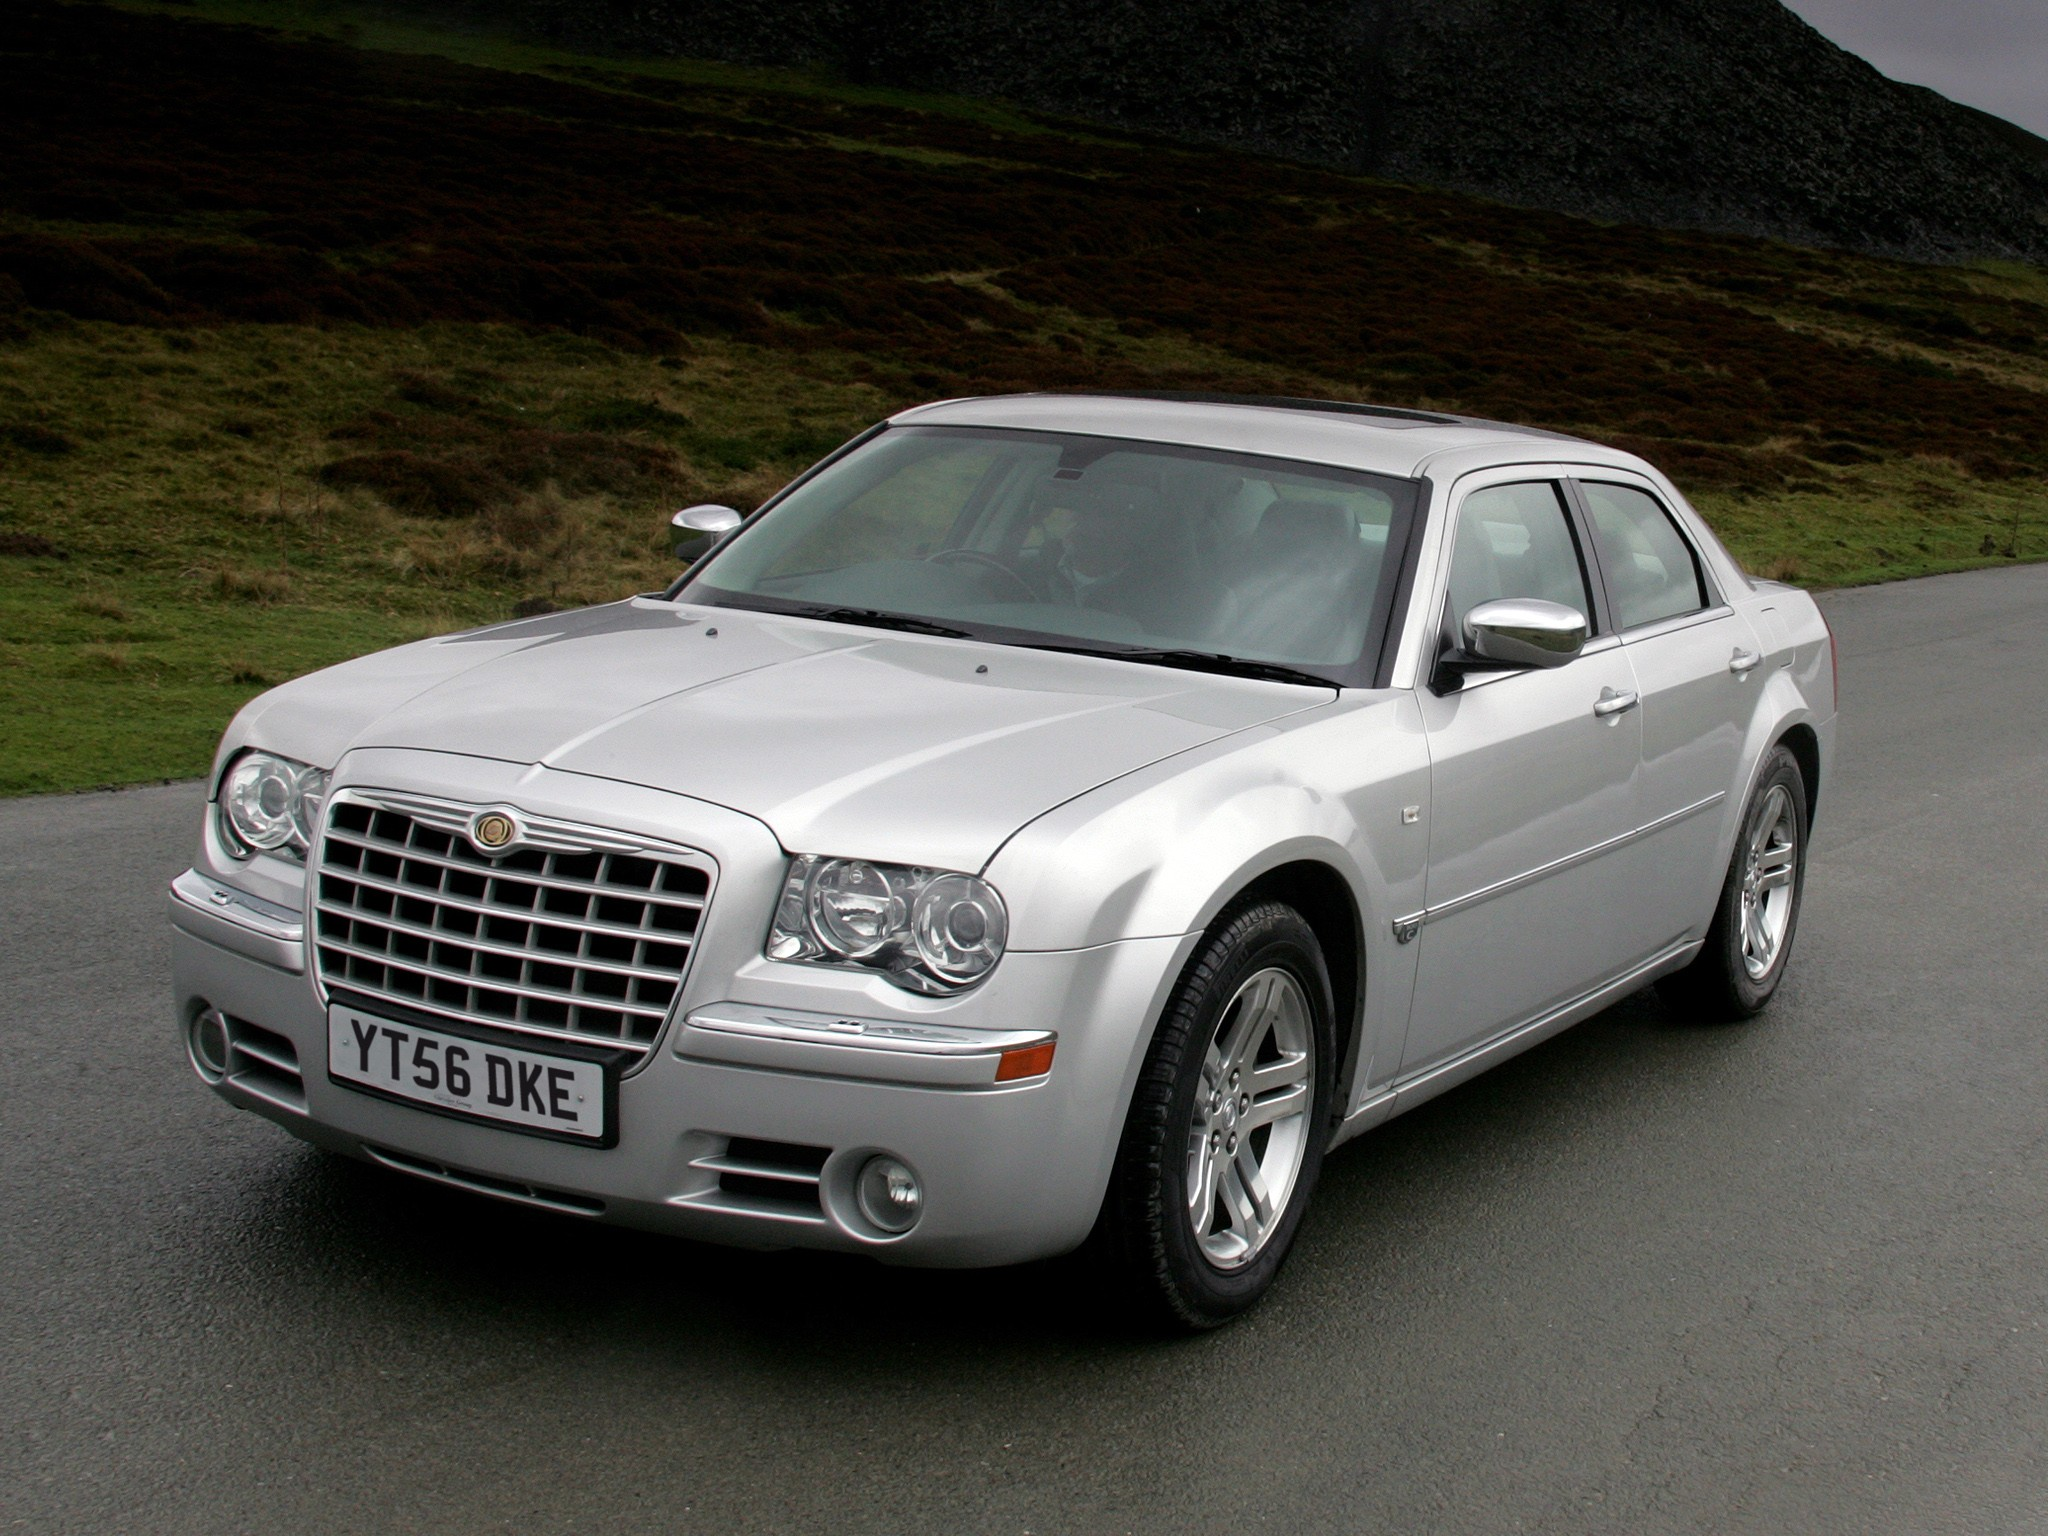 CHRYSLER 300C 2169 30 - 2010 Chrysler 300 S V6